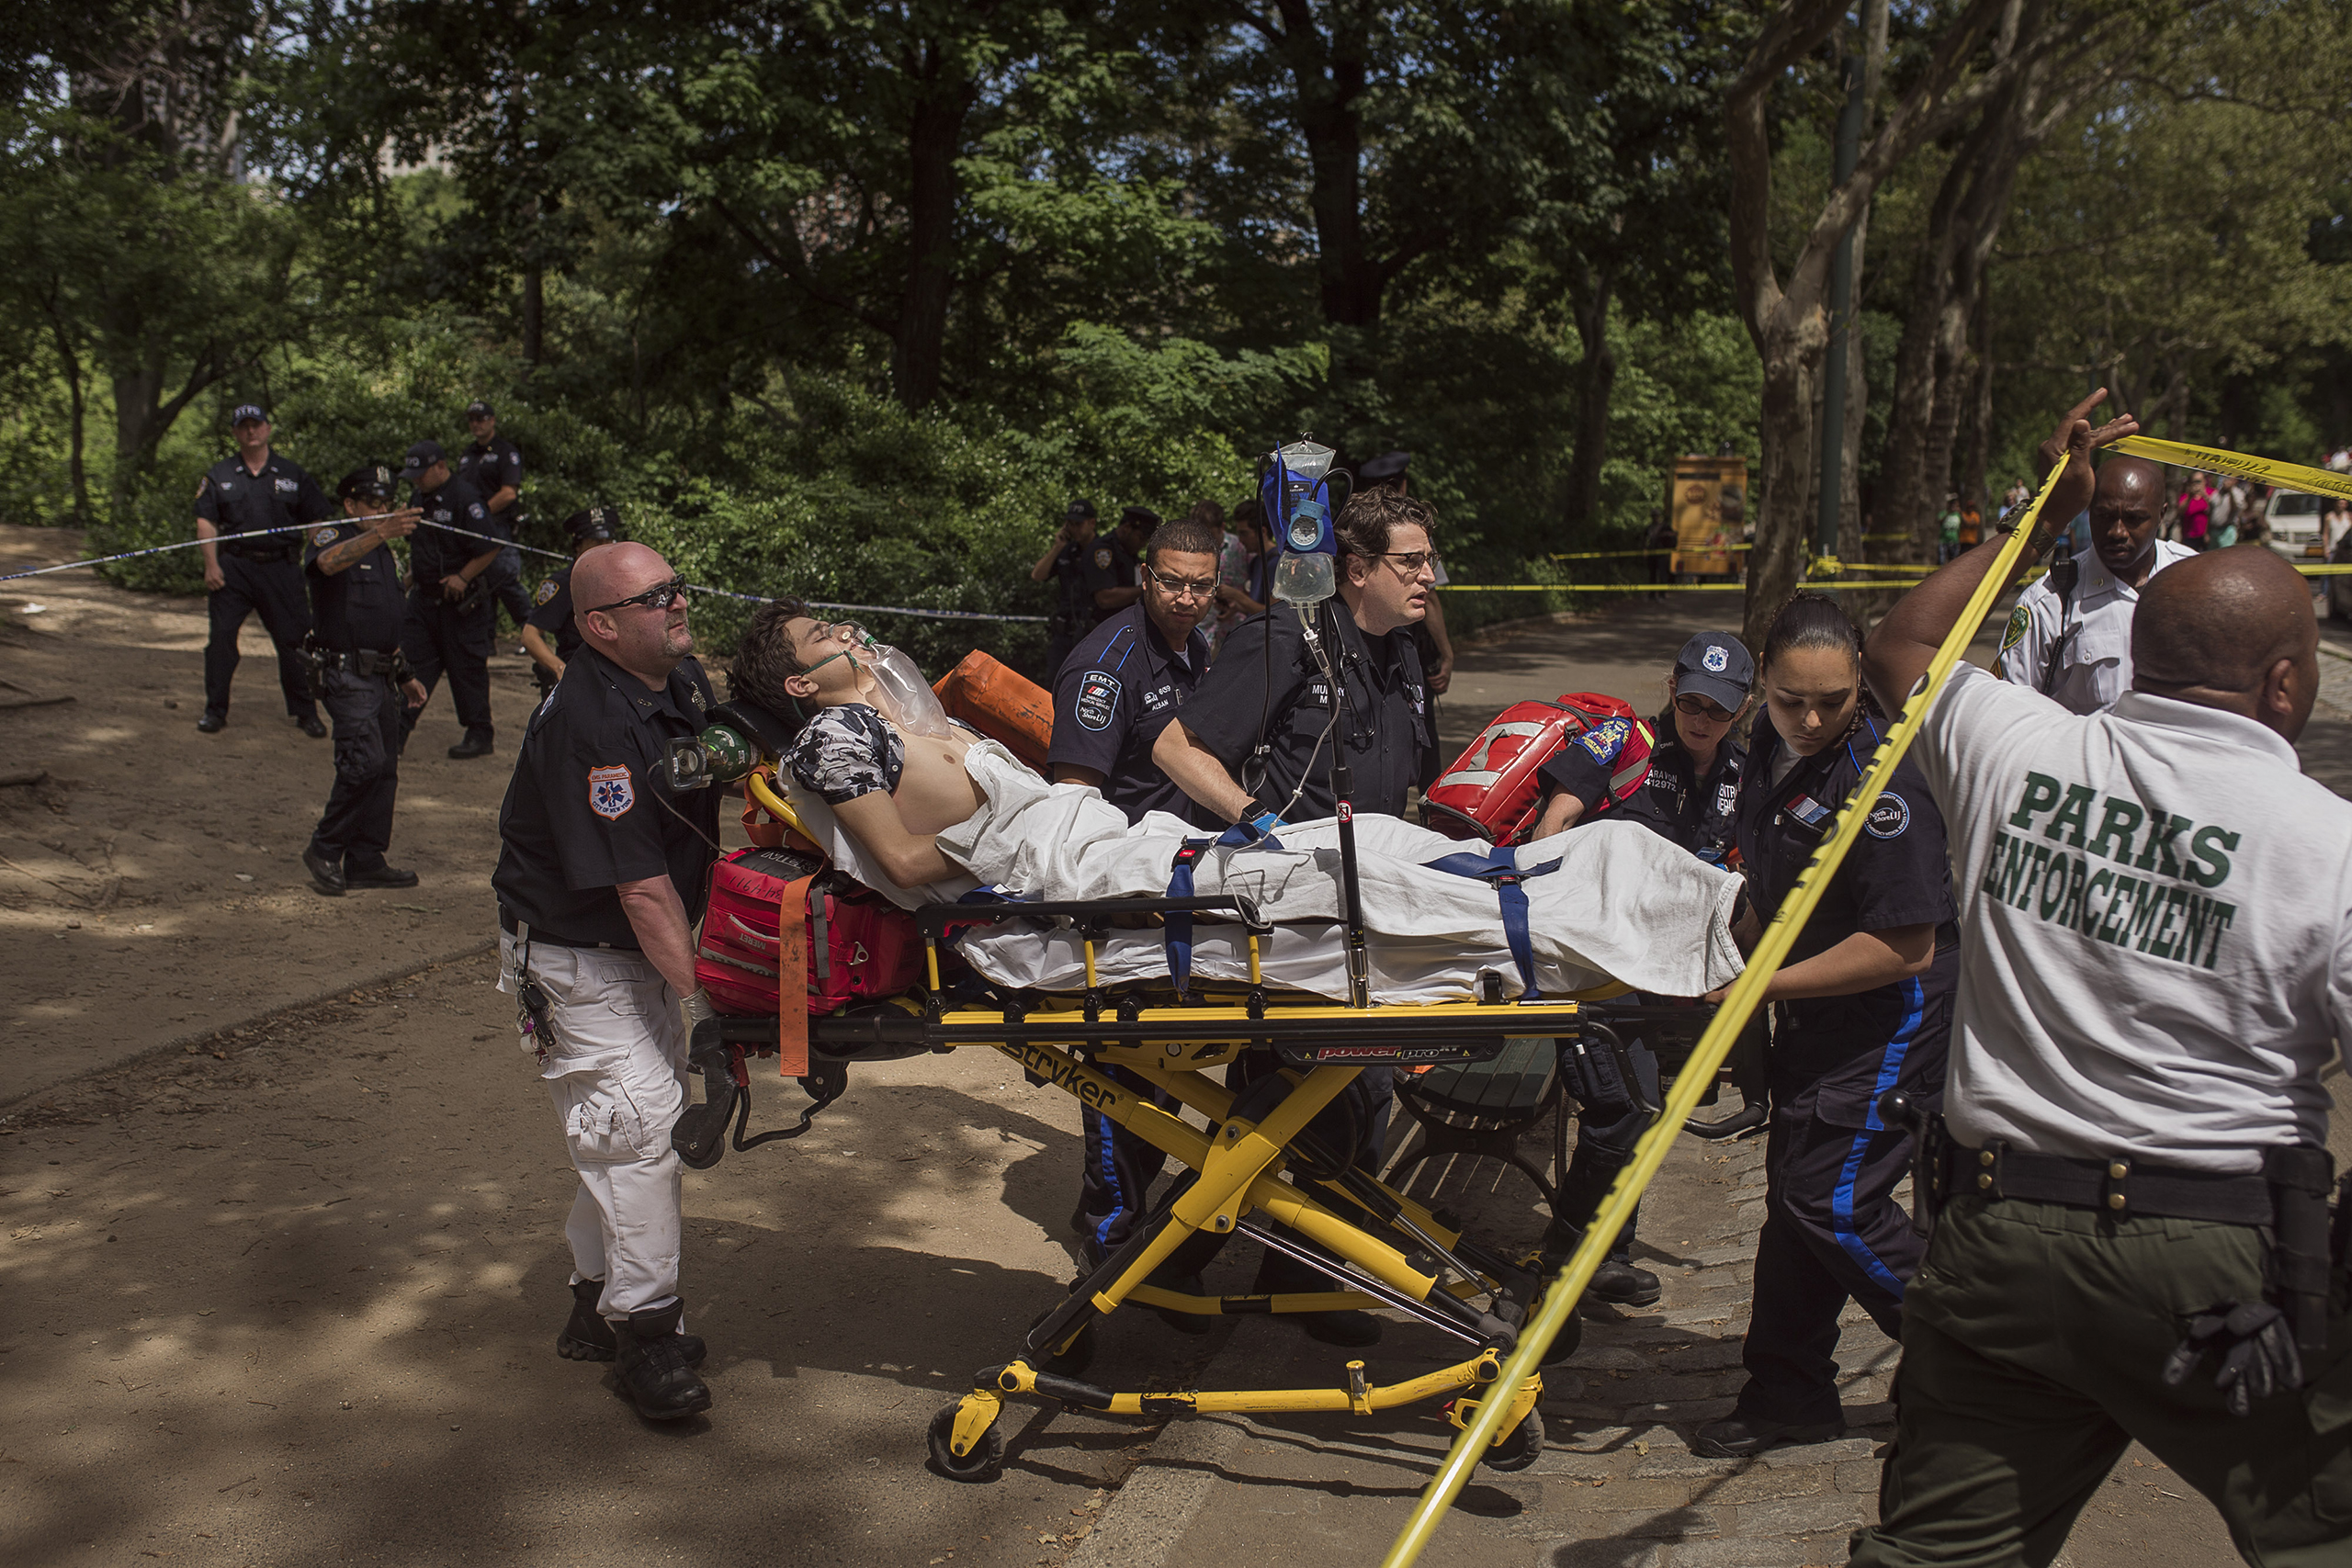 A injured man is carried to an ambulance in Central Park in New York City on July 3, 2016.